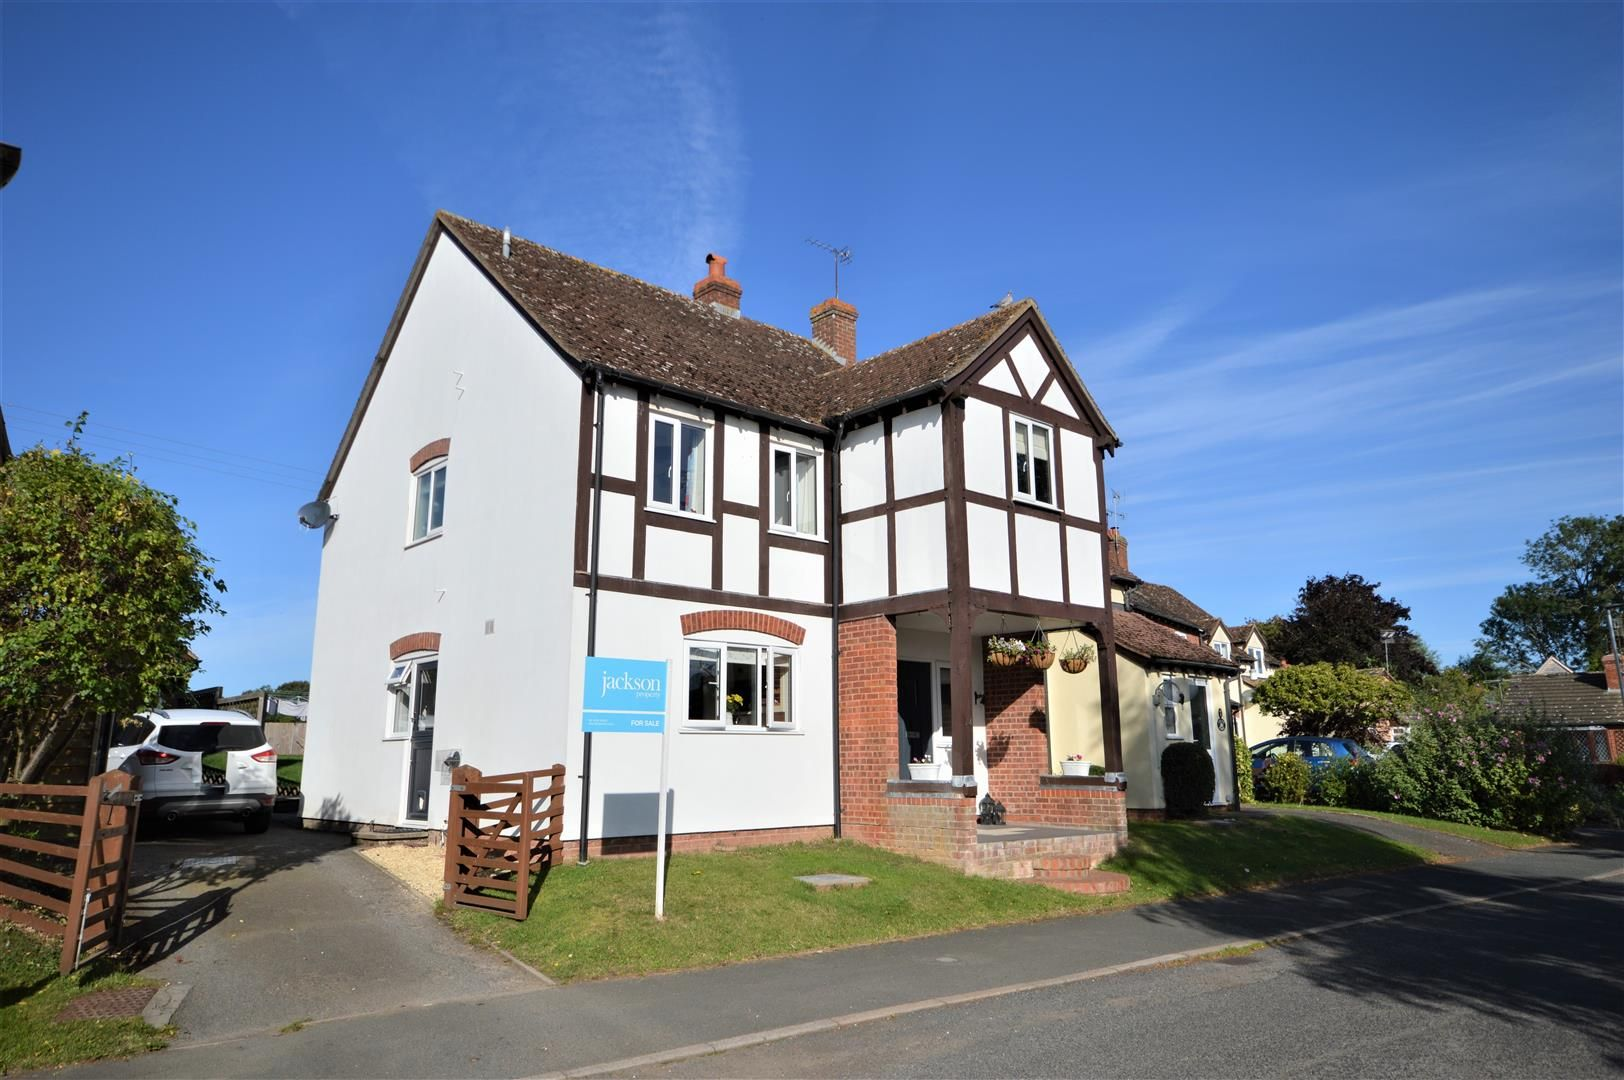 4 bed semi-detached for sale in Luston 1